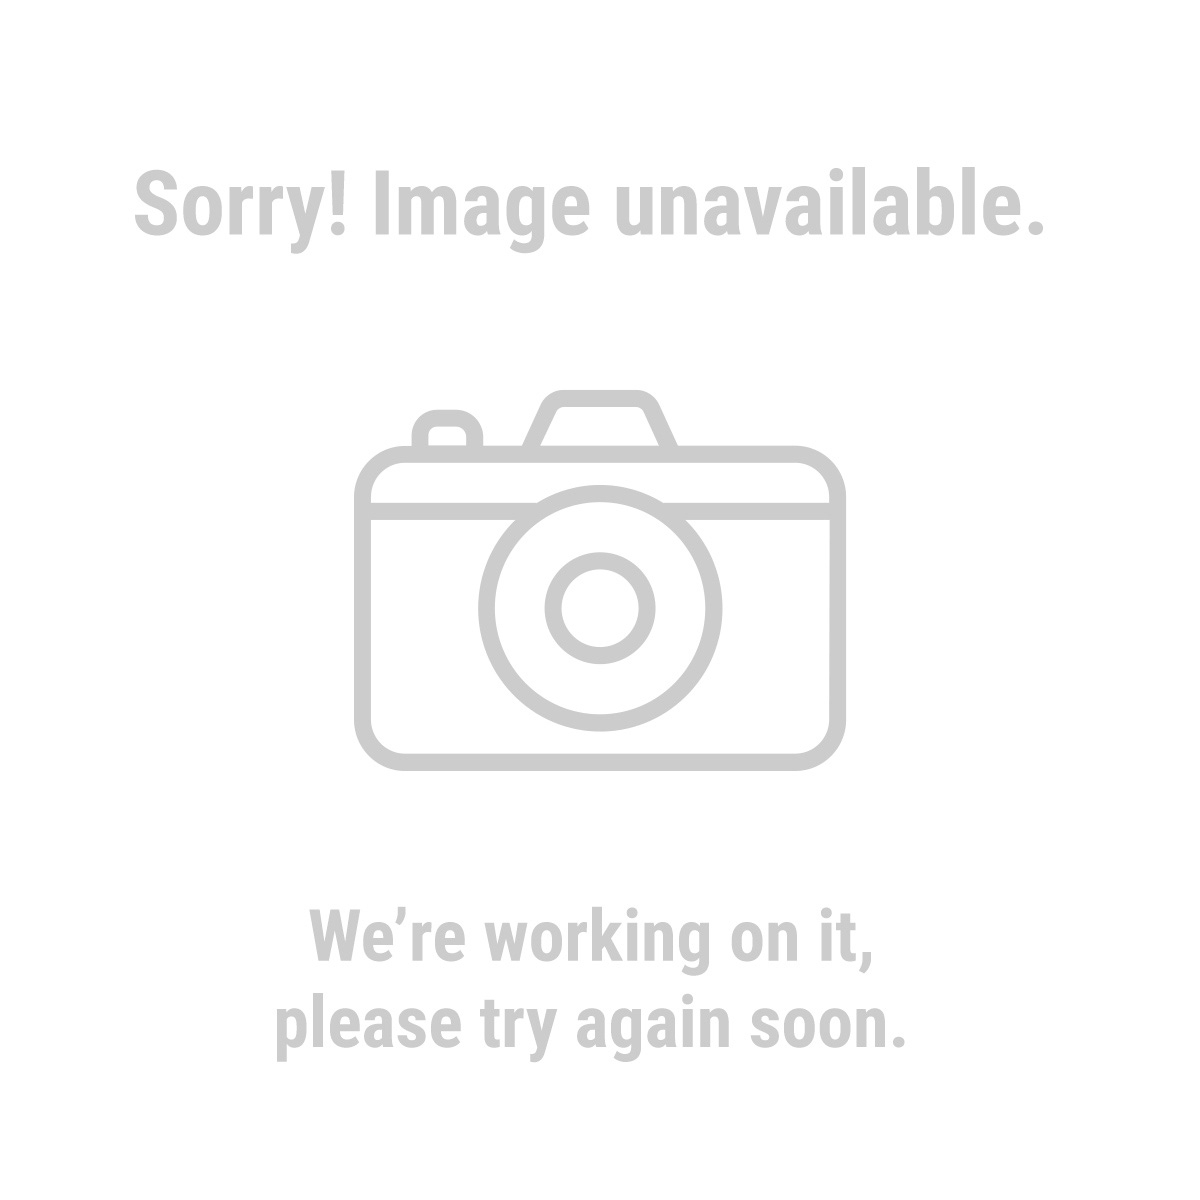 Cen-Tech 93984 Infrared Thermometer